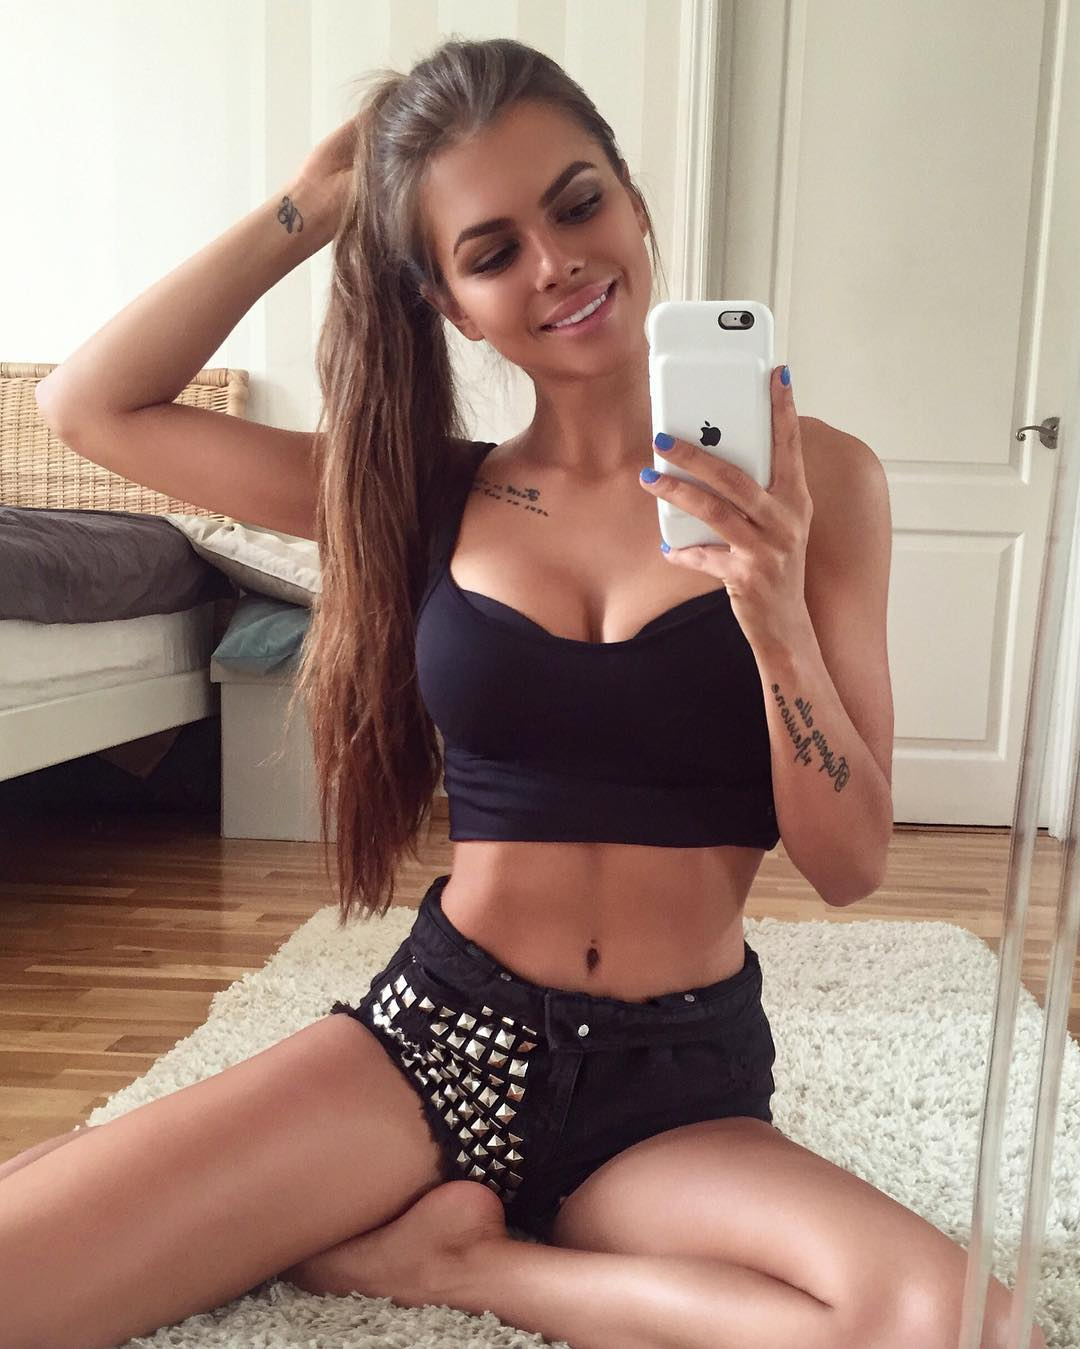 Viki Odintcova Looks Hot in Black Outfit